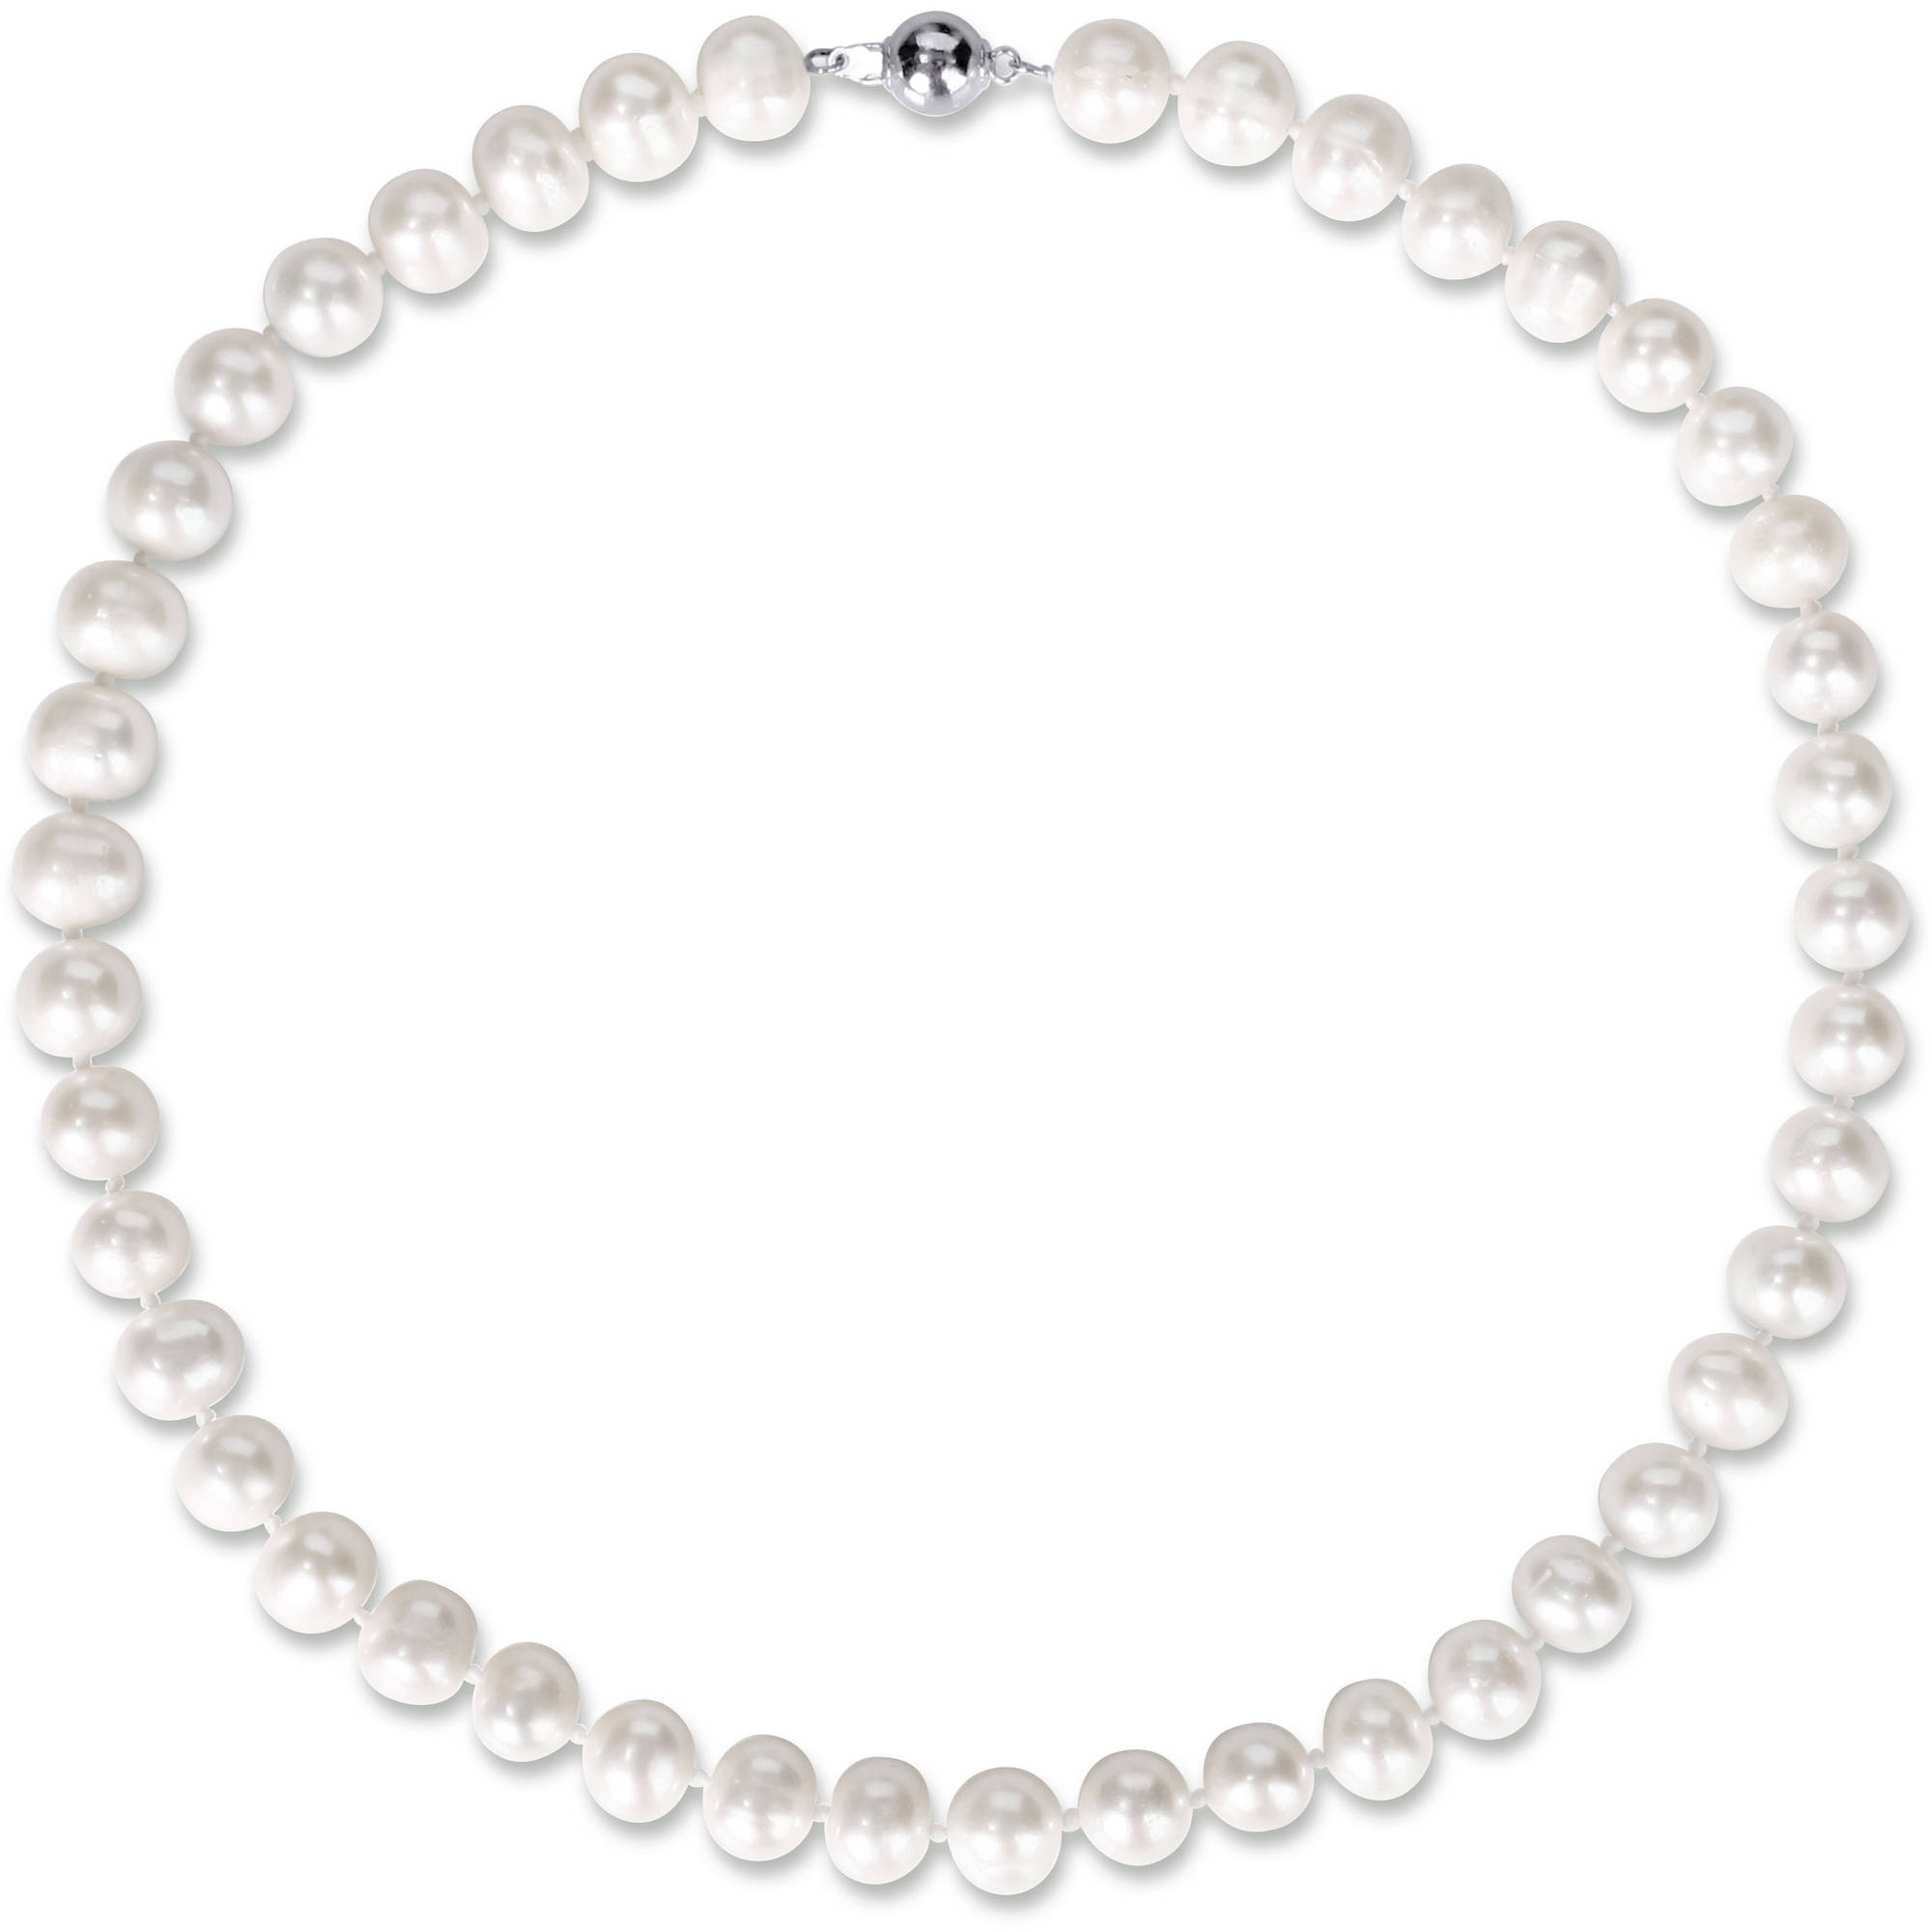 Miabella 9-10mm White Cultured Freshwater Pearl Brass Set of Necklace and Earrings, 18